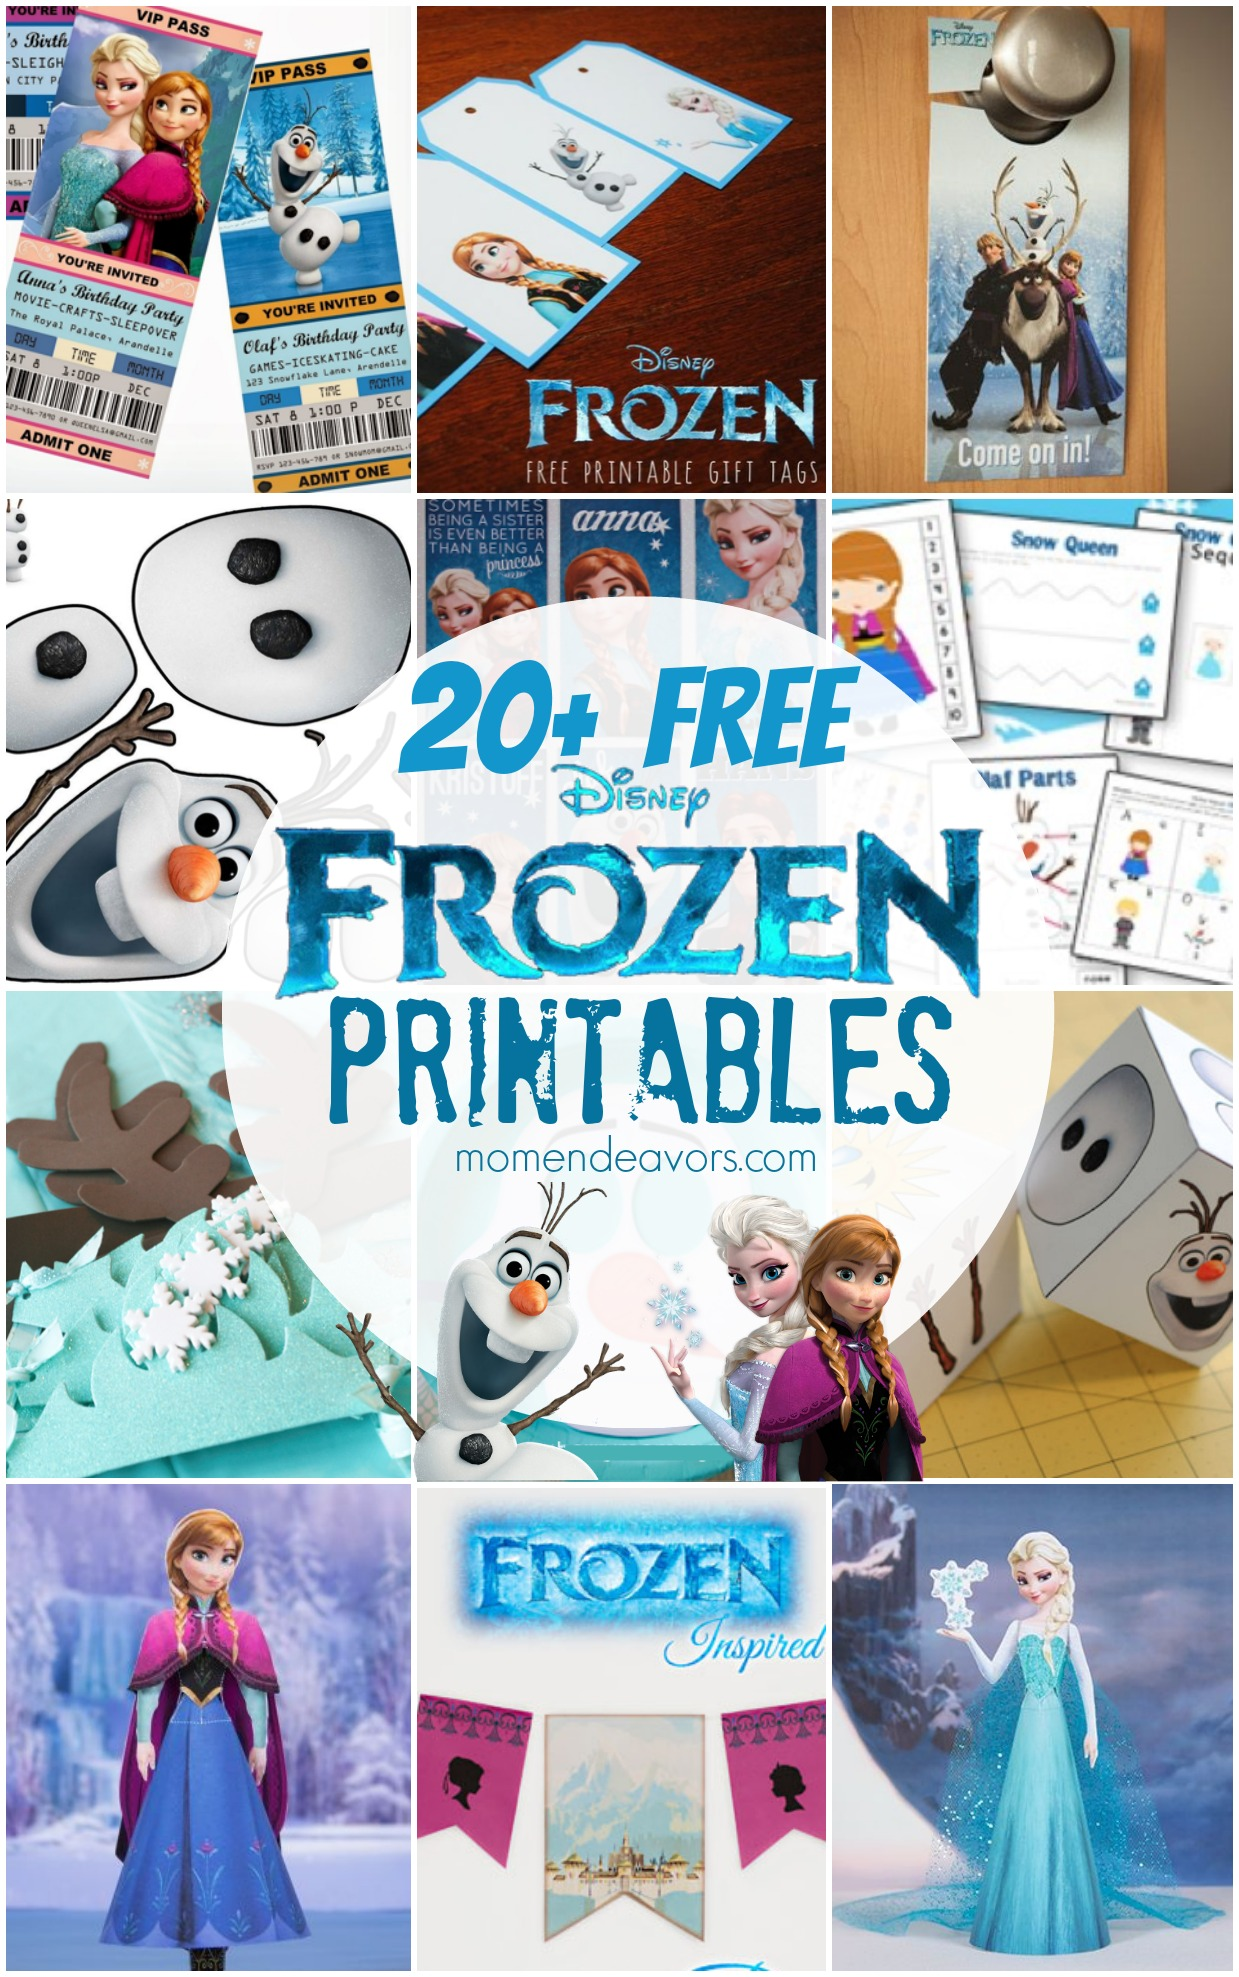 graphic about Frozen Party Food Labels Free Printable identified as 20+ Absolutely free Disney FROZEN Printables Match Sheets Social gathering